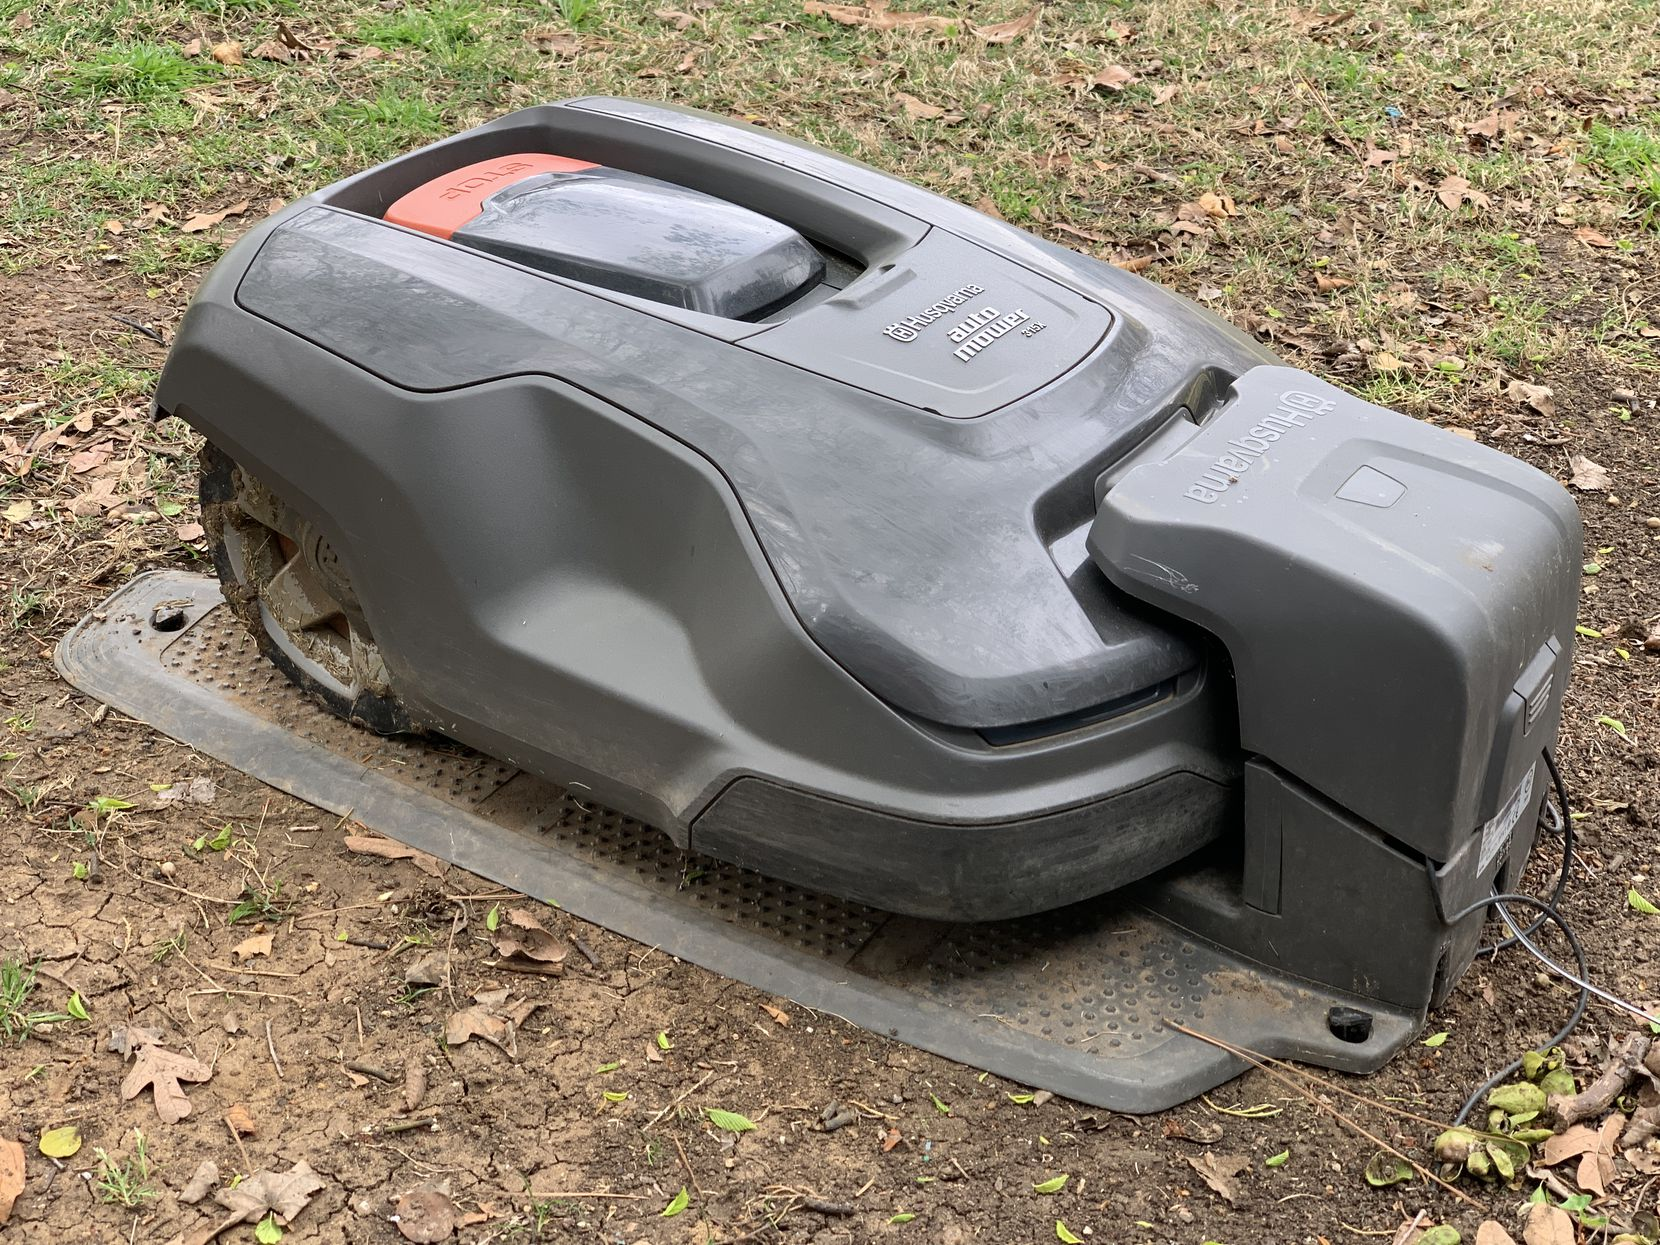 The Husqvarna Automower 315X in its charging base.